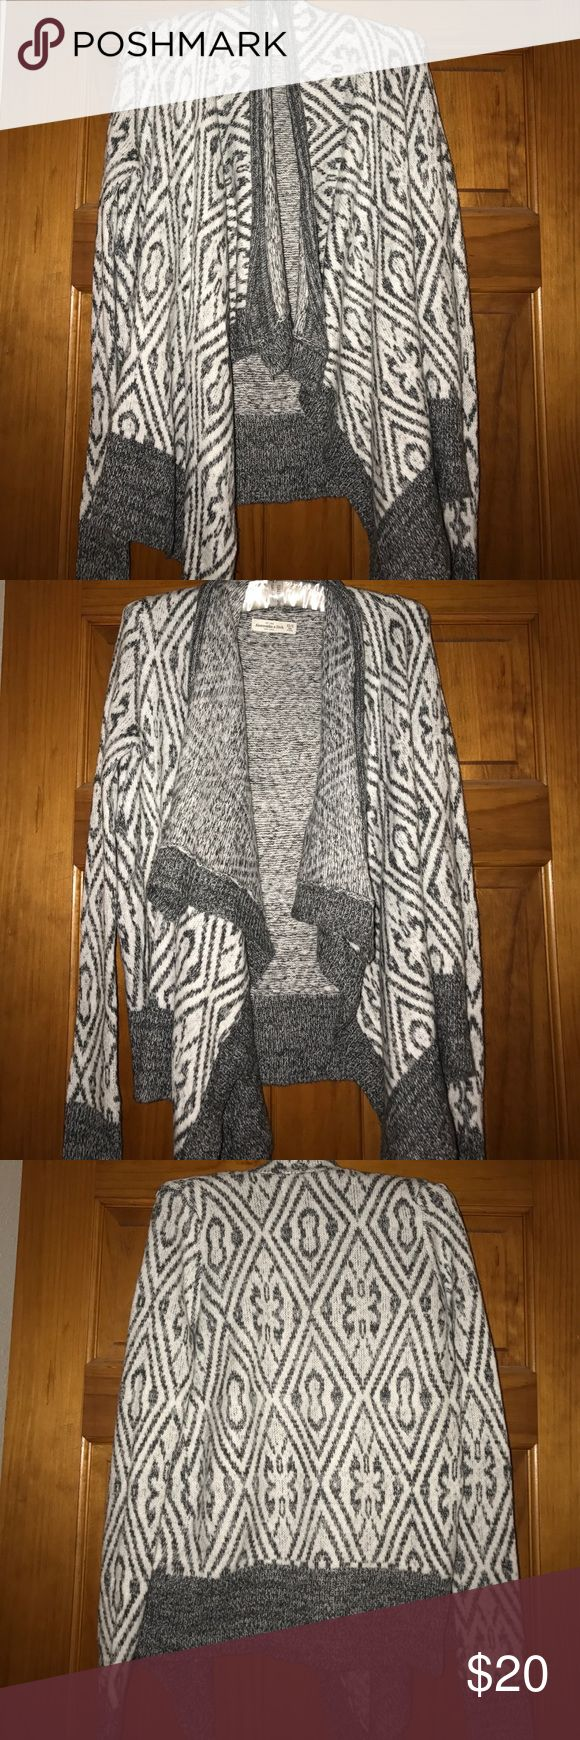 Abercrombie & Fitch cardigan A&F cardigan. Does not have any type of closer, no zippers or buttons. Just flows. Very soft and comfy. Never used. Size xs/s. Feel free to submit offers! Most will be excepted. Abercrombie & Fitch Sweaters Cardigans